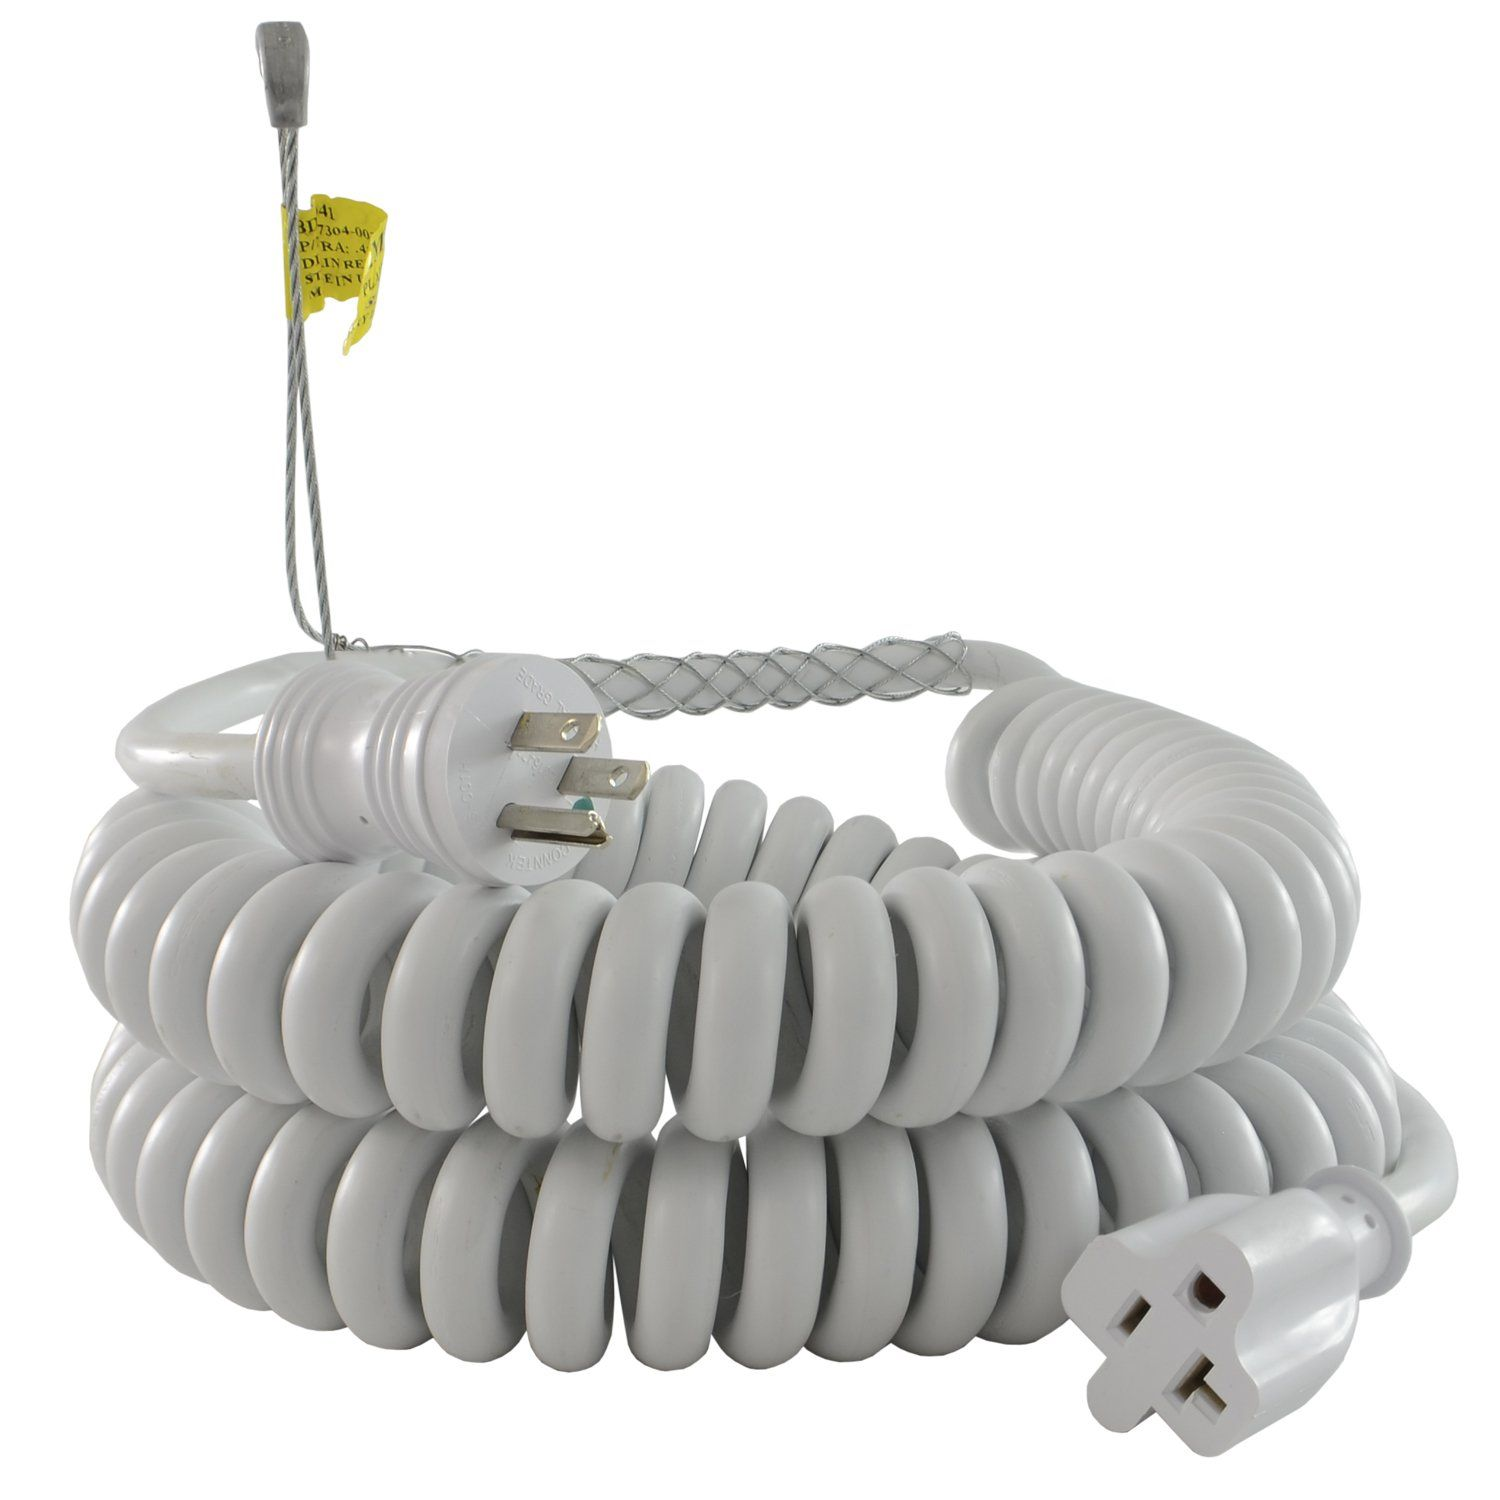 Conntek Rl 70046 Gb Upto 15 Feet Heavy Duty 12 3 Coiled Spring Extension Cord 15 20 Amp Female Connector Click On The Image Fo Extension Cord Cord Connector